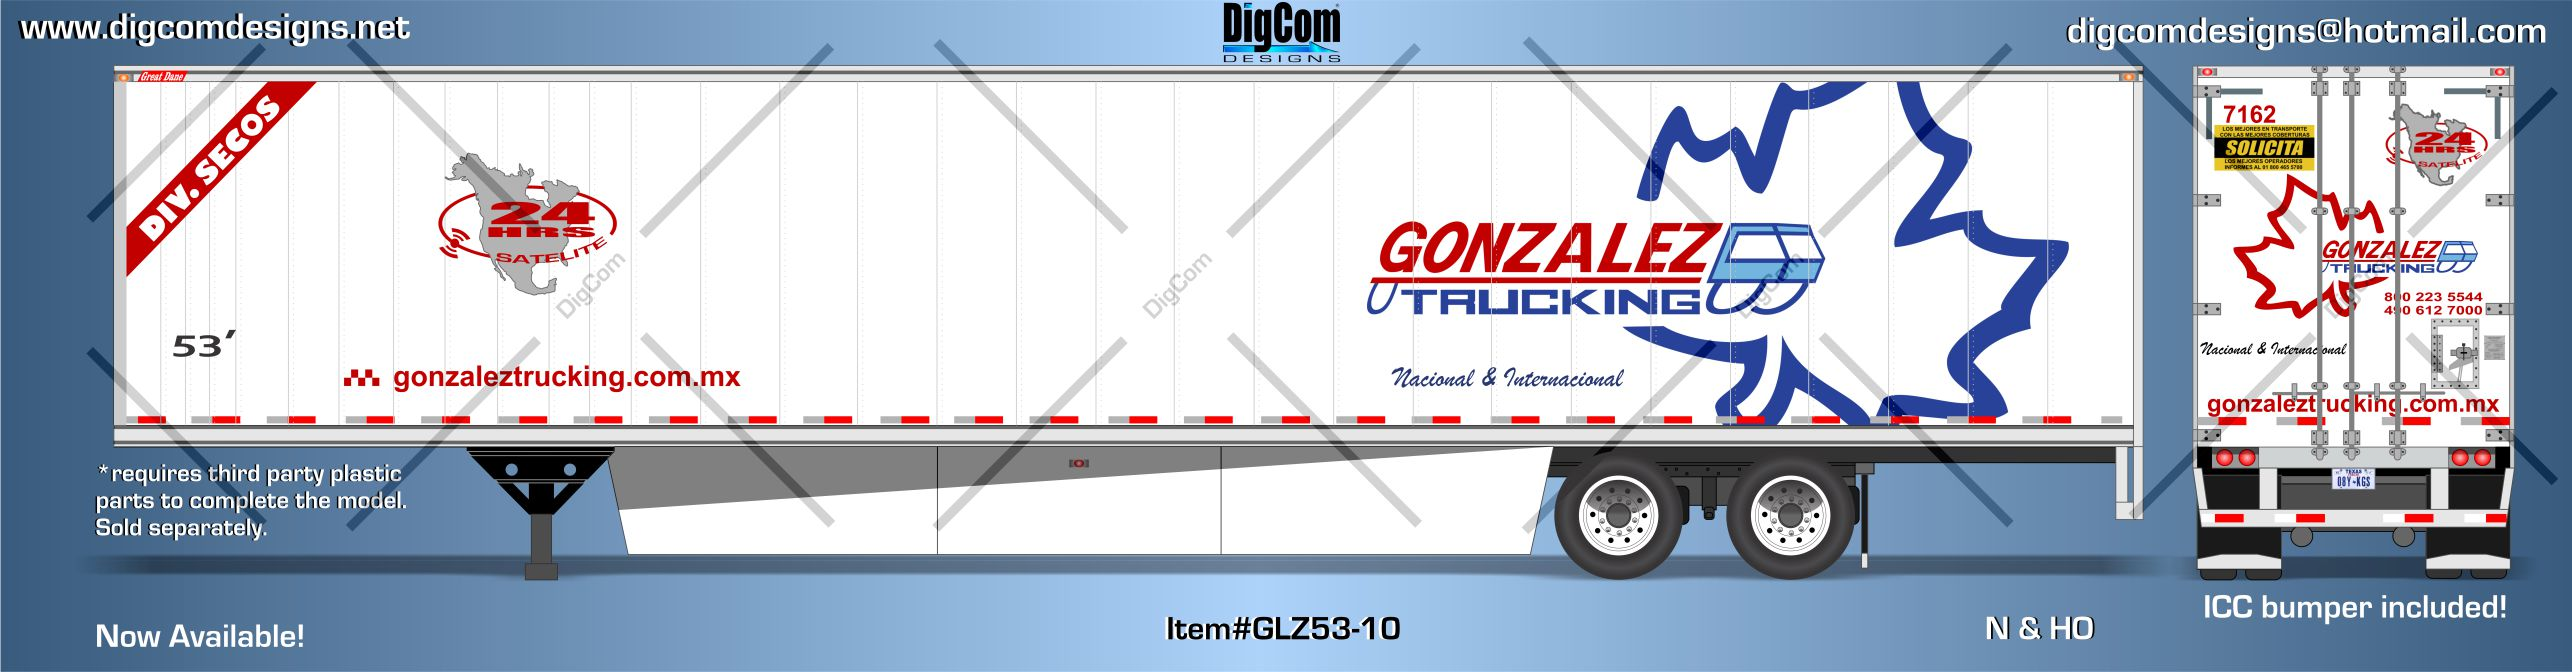 GONZALEZ TRUCKING DESIGN.jpg